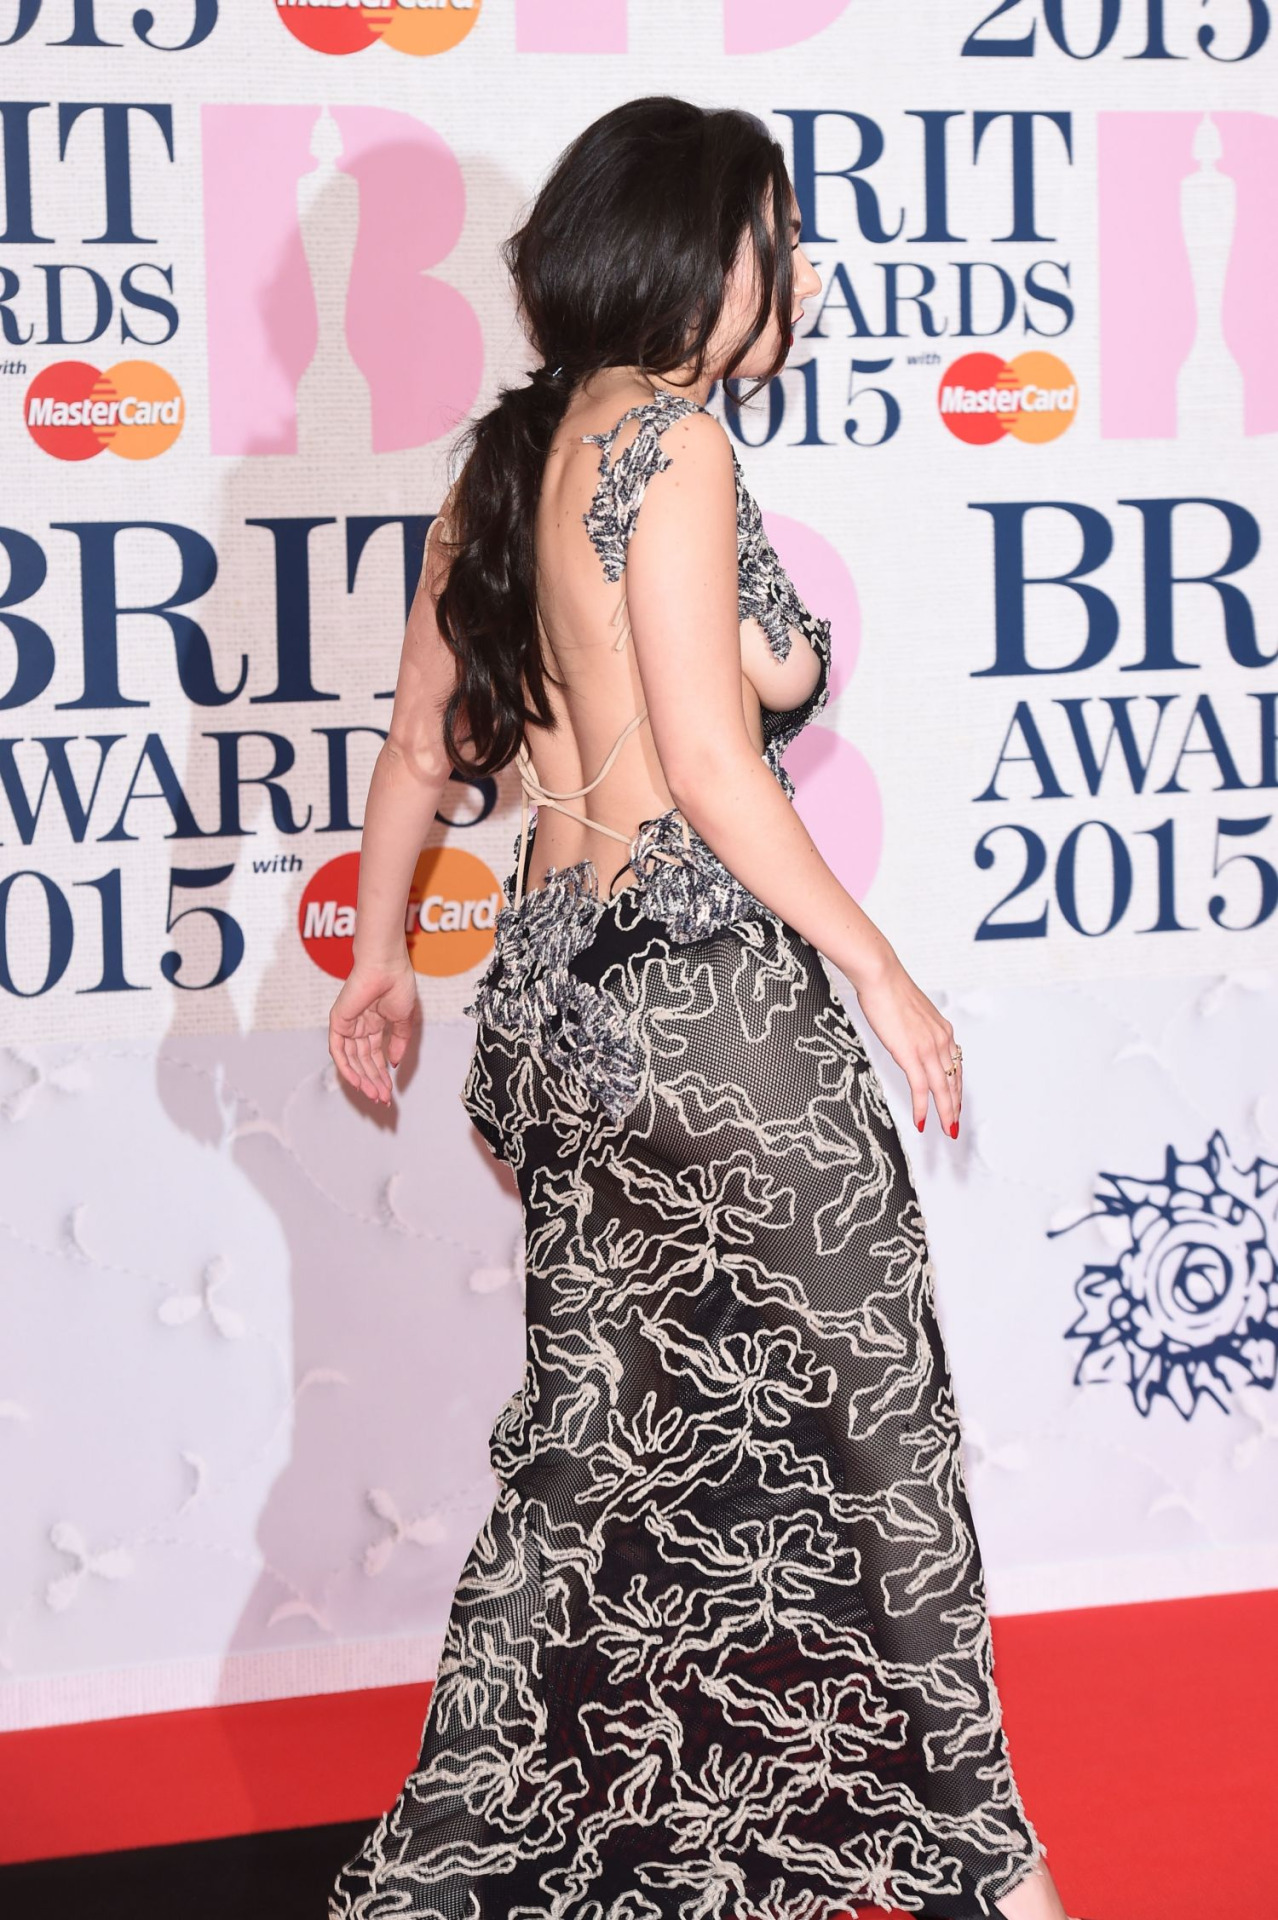 Charli XCX, is an English singer and songwriter.